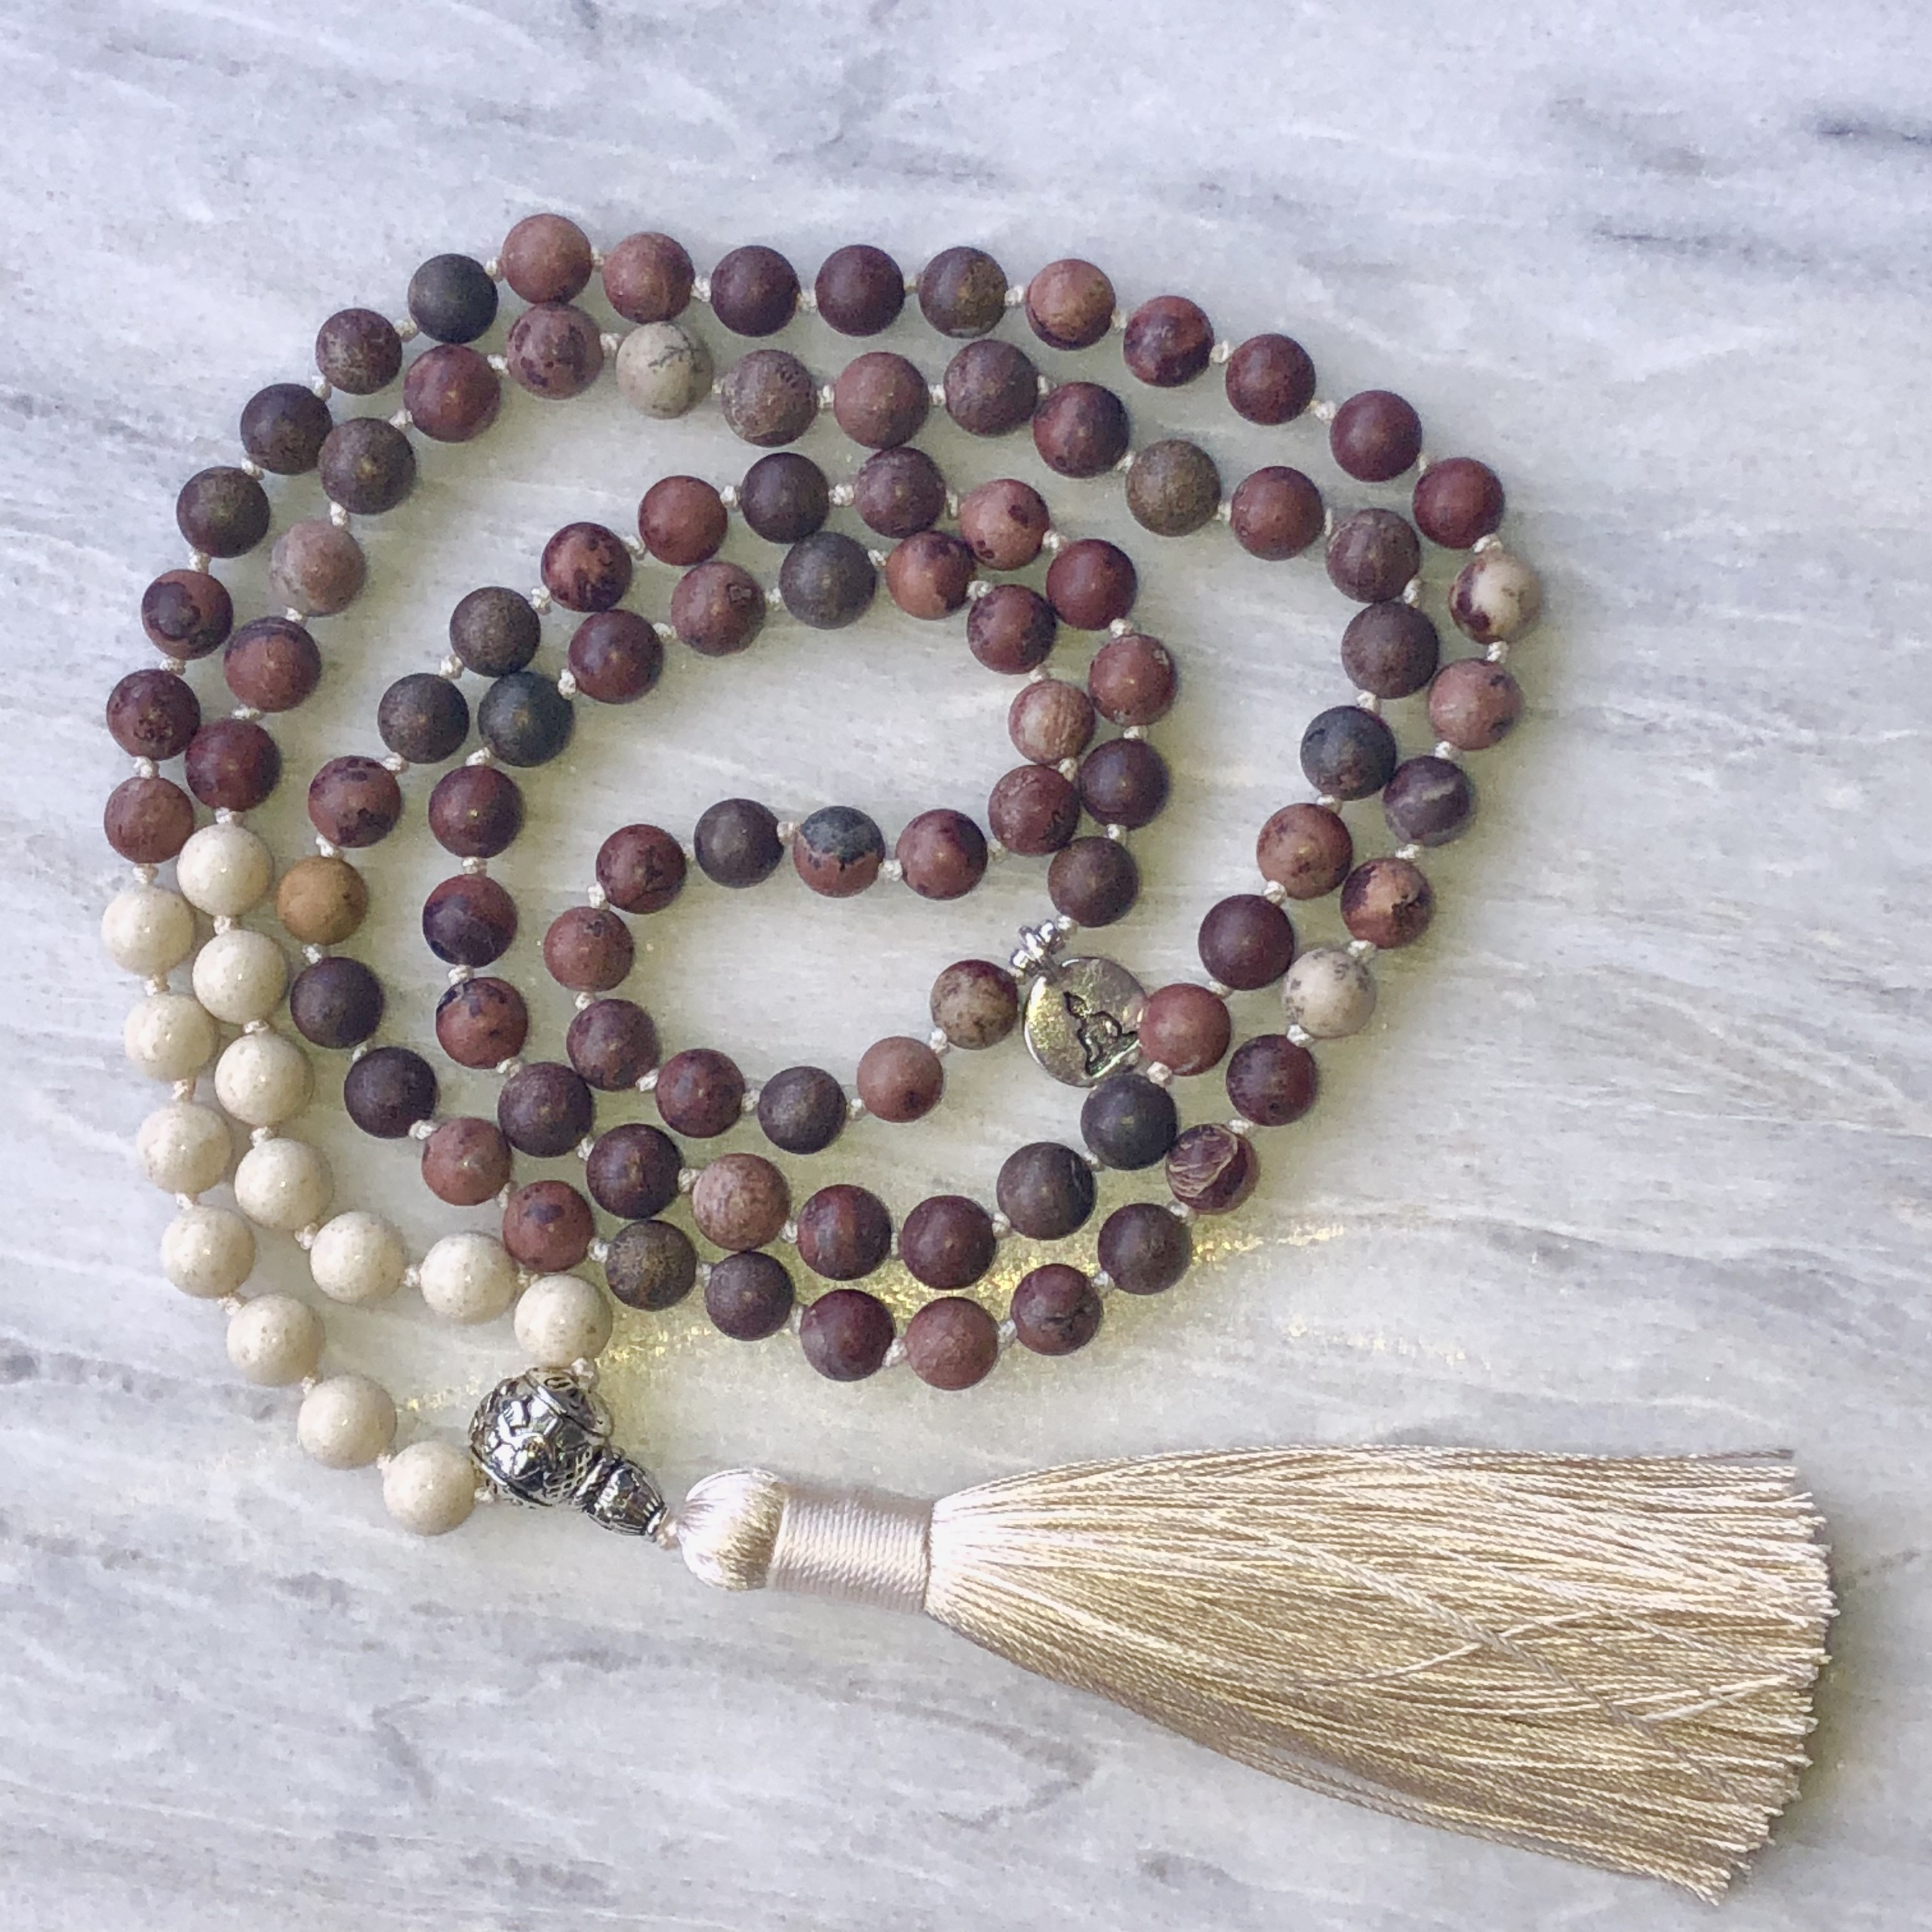 Stability and Harmony - Crazy Horse Agate and Fossil Agate Mala